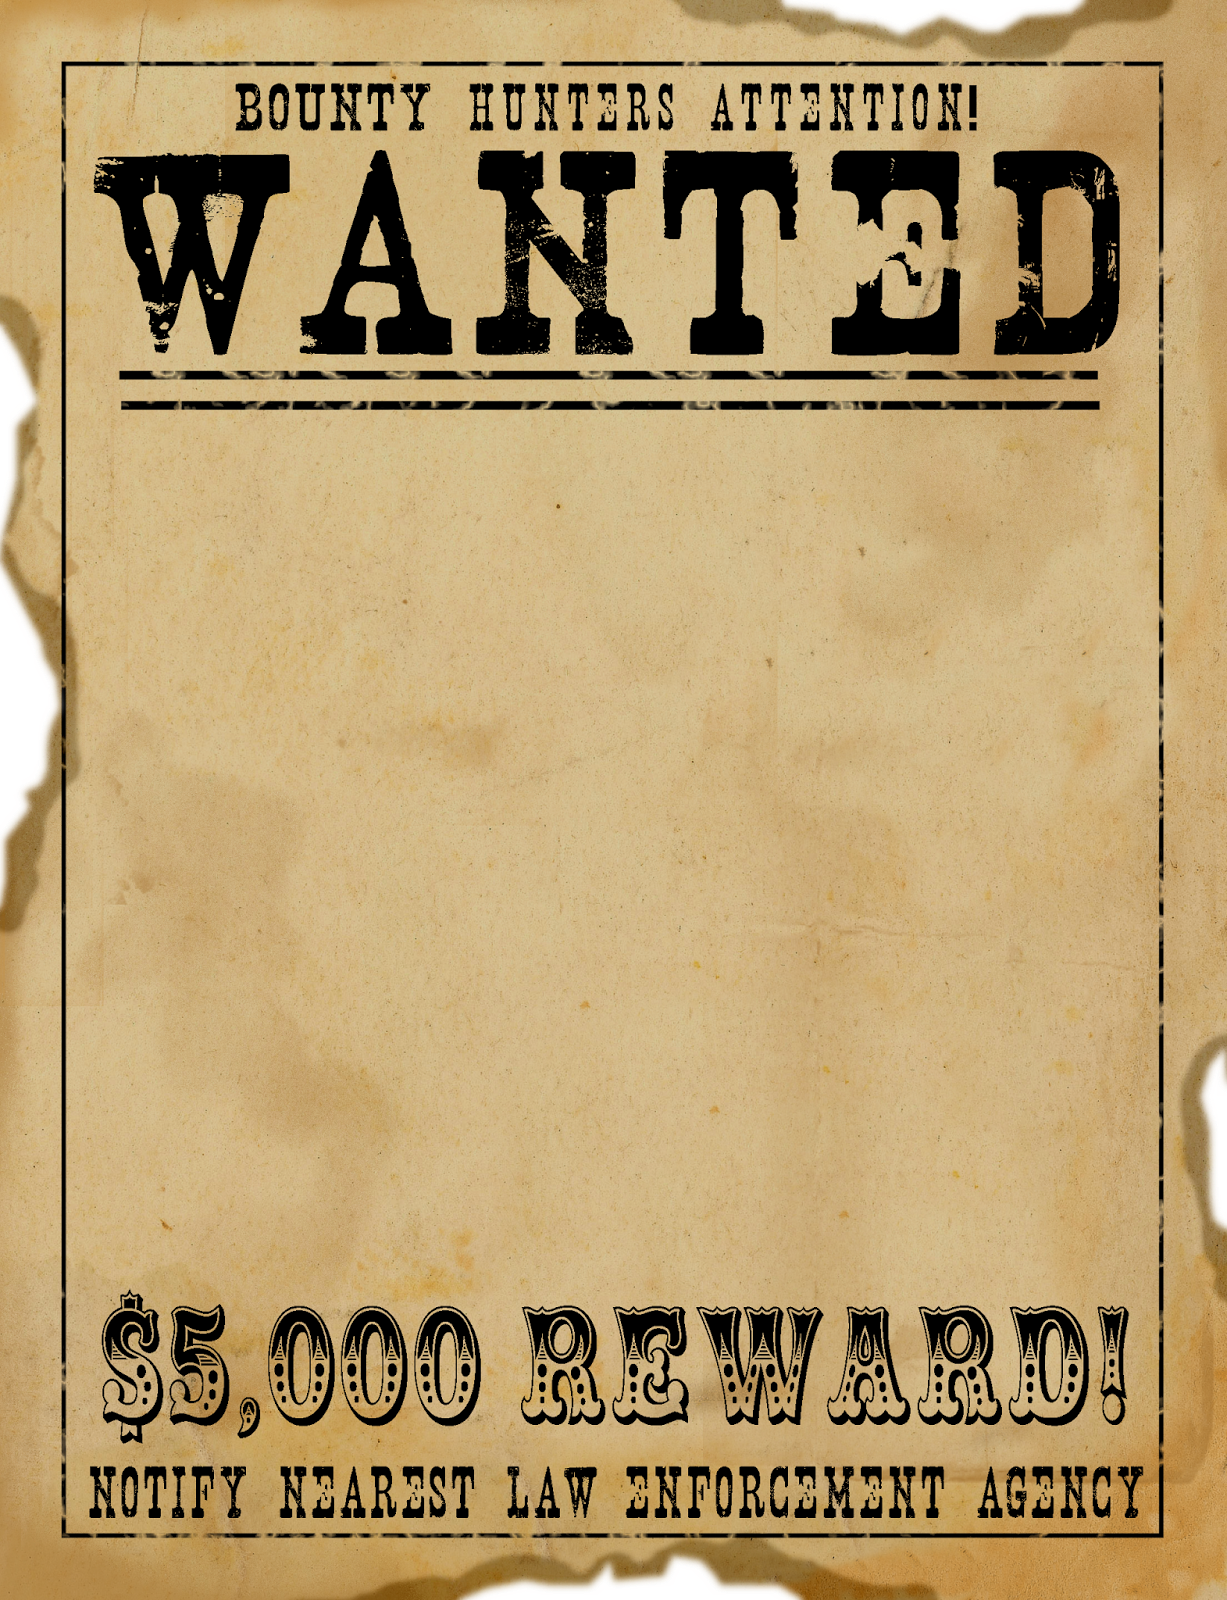 4 Bp Blogspot Com Afcn5qwl0t4 Uztx6hfjhmi Aaaaaaaab6m Cqz9pf6dq6m S1600 Freescrapbookgraphics Wanted Poster Png Wild West Crafts Wild West Theme Wild West